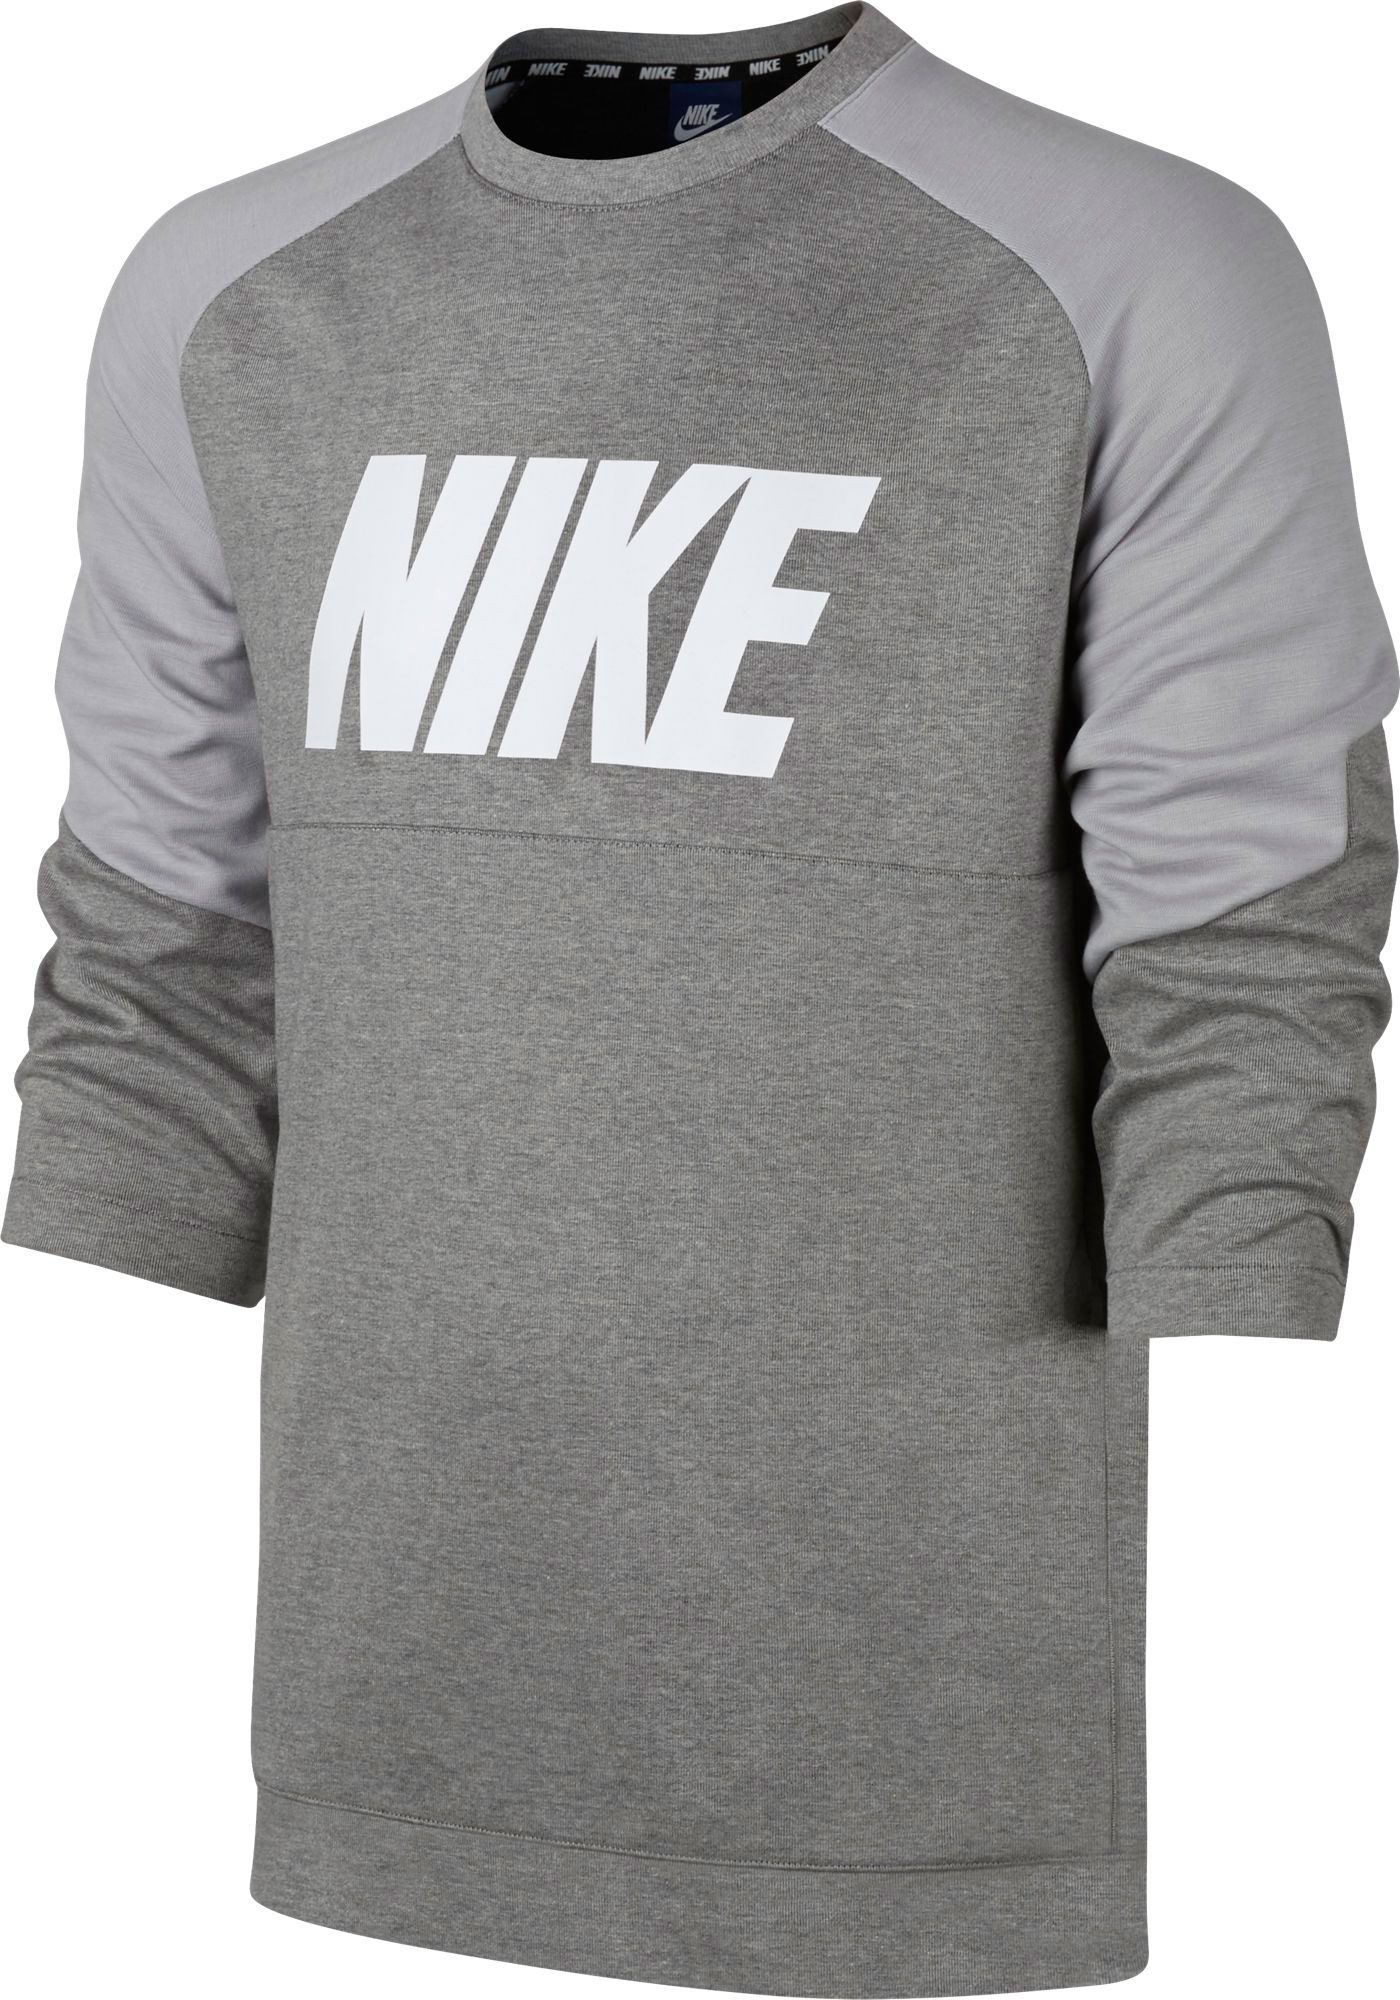 Nike Men's Sportswear Advance 15 Long Sleeve Shirt by Nike